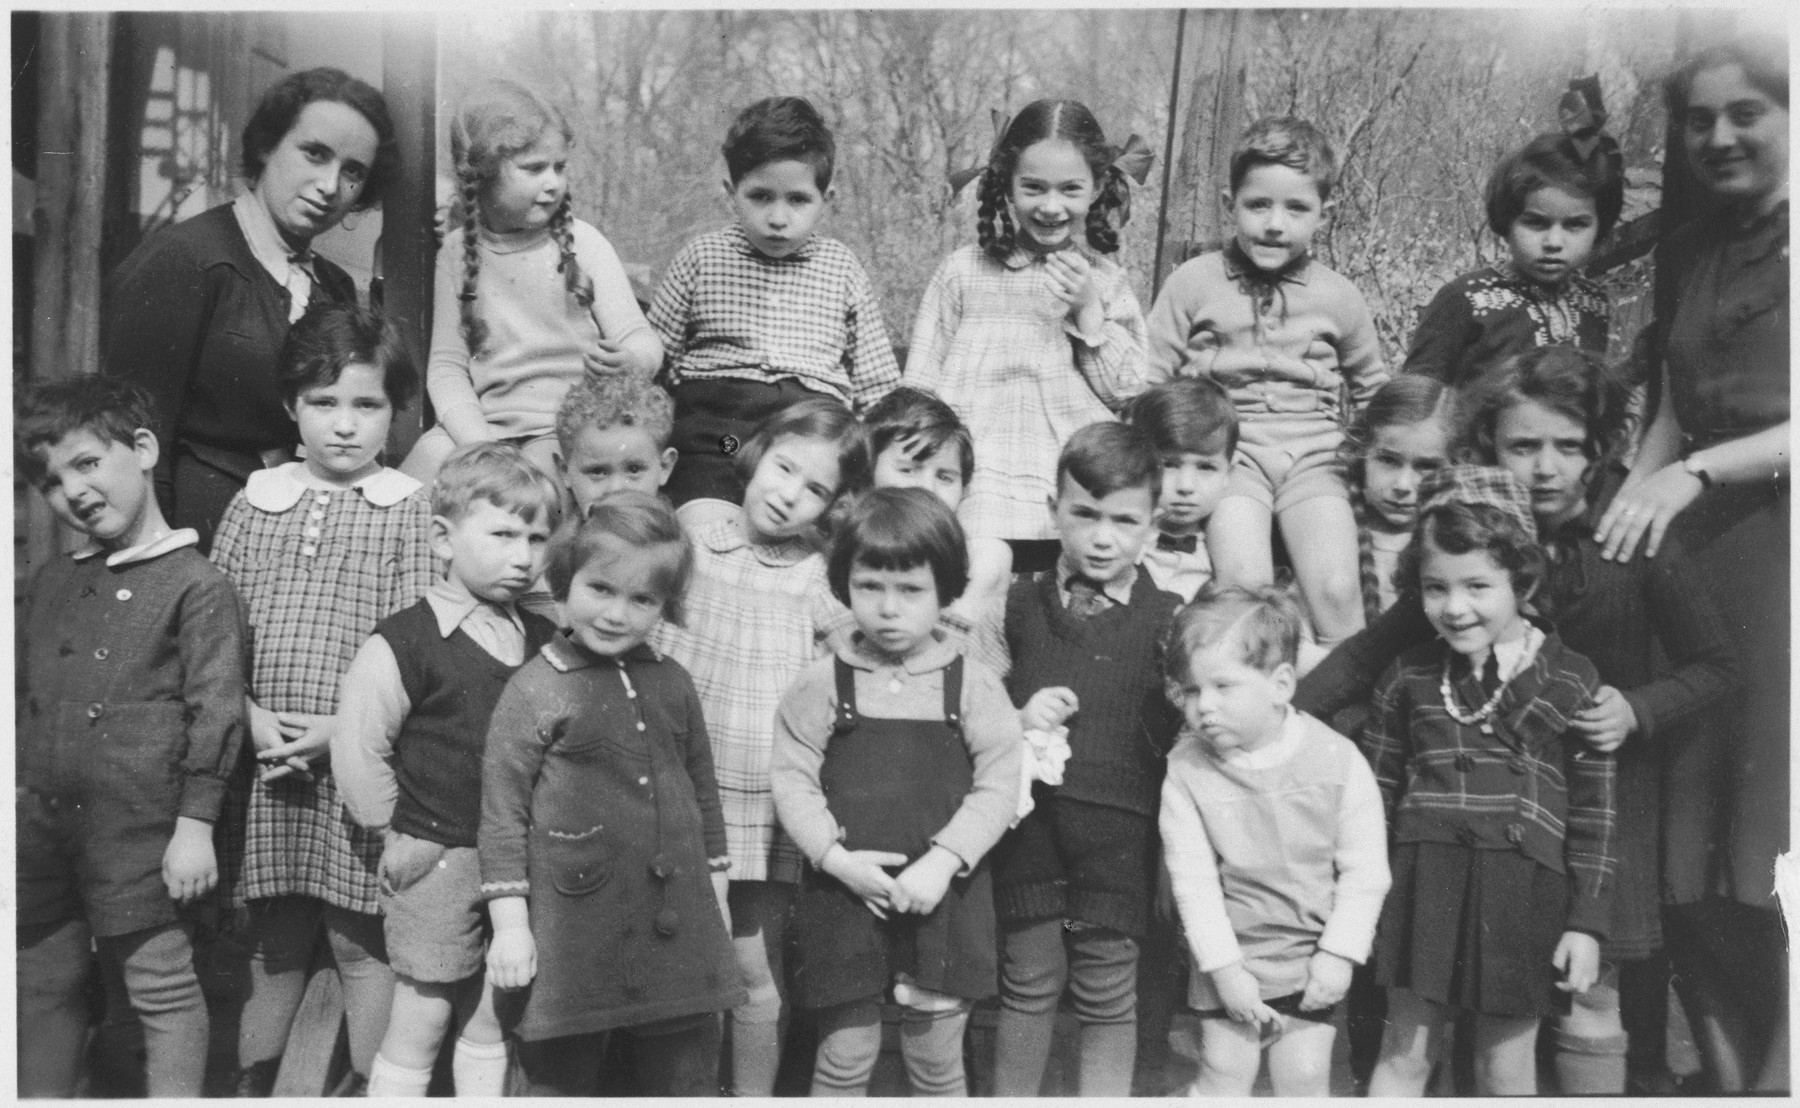 Group portrait of children in the Jewish kindergarten in Leipzig, Germany,  Among those pictured is Ruth Bild (front row, center).